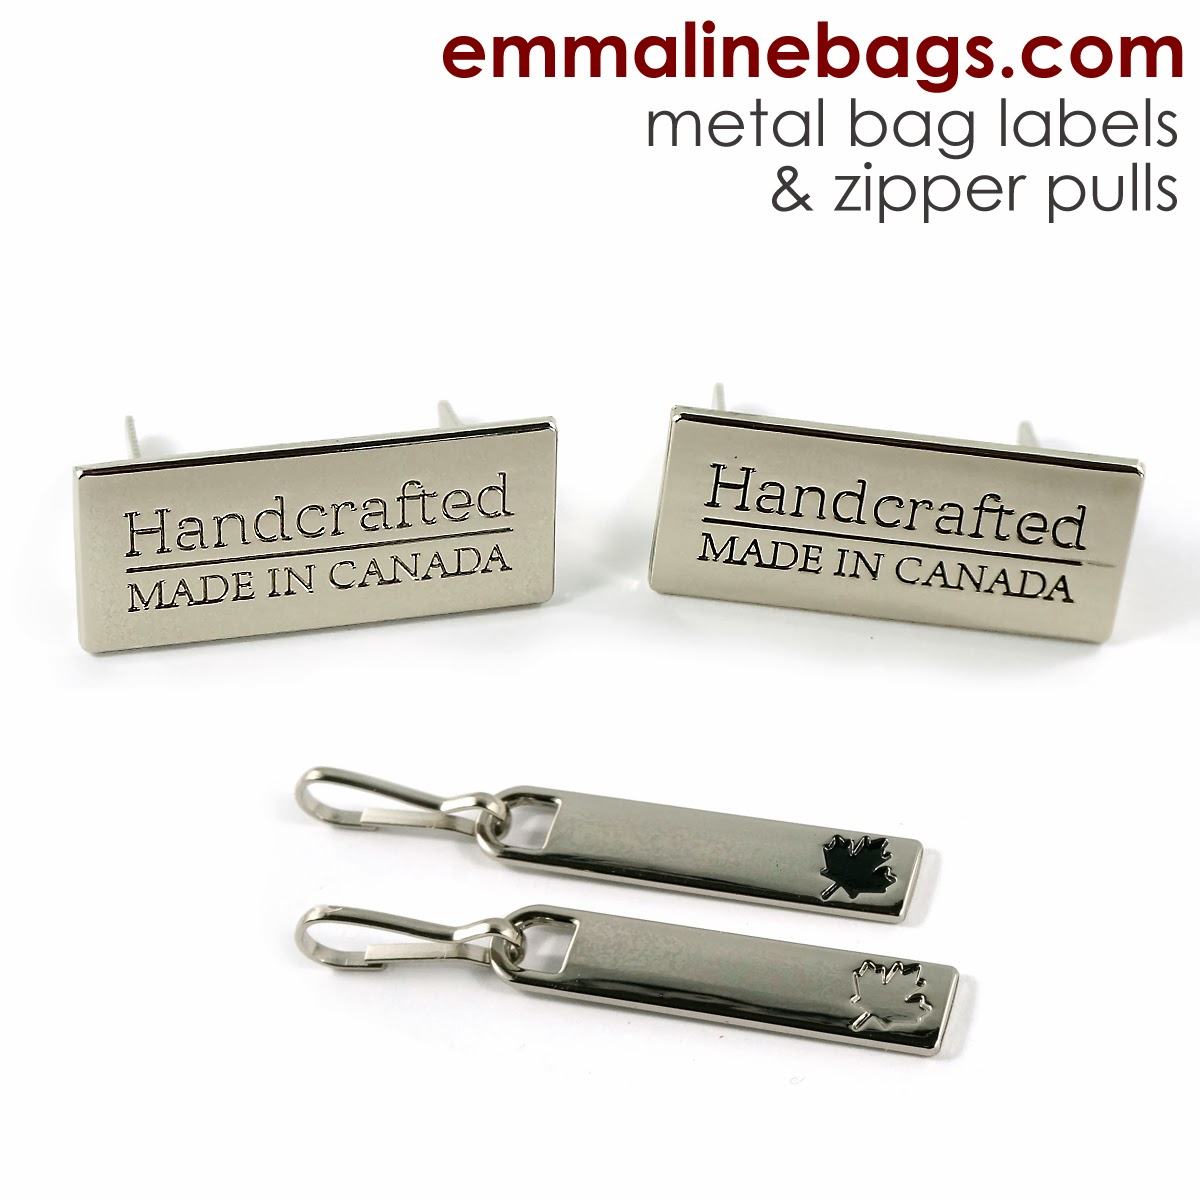 Made in Canada labels and zipper pulls